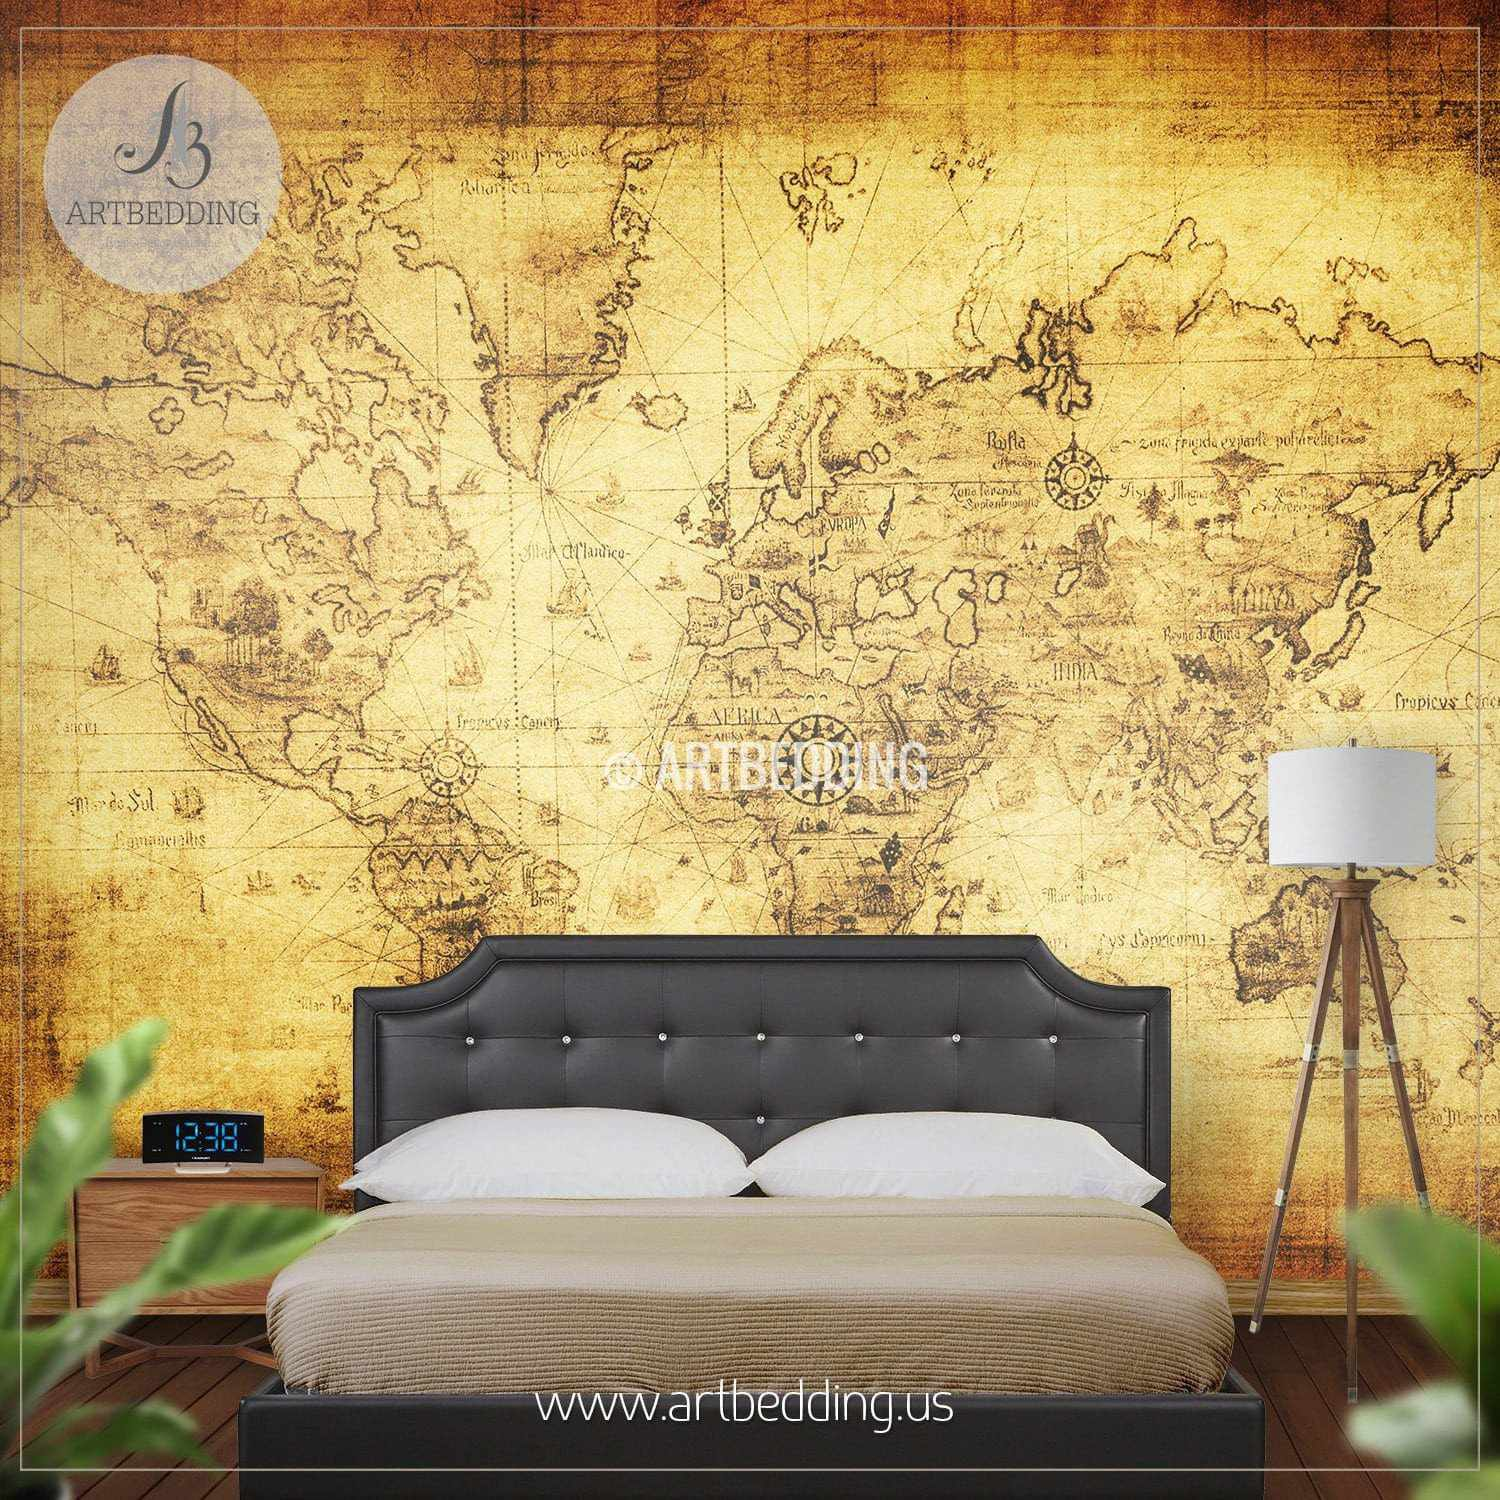 Vintage map wall mural self adhesive photo mural artbedding ancient world map wall mural self adhesive peel stick photo mural atlas wall gumiabroncs Image collections